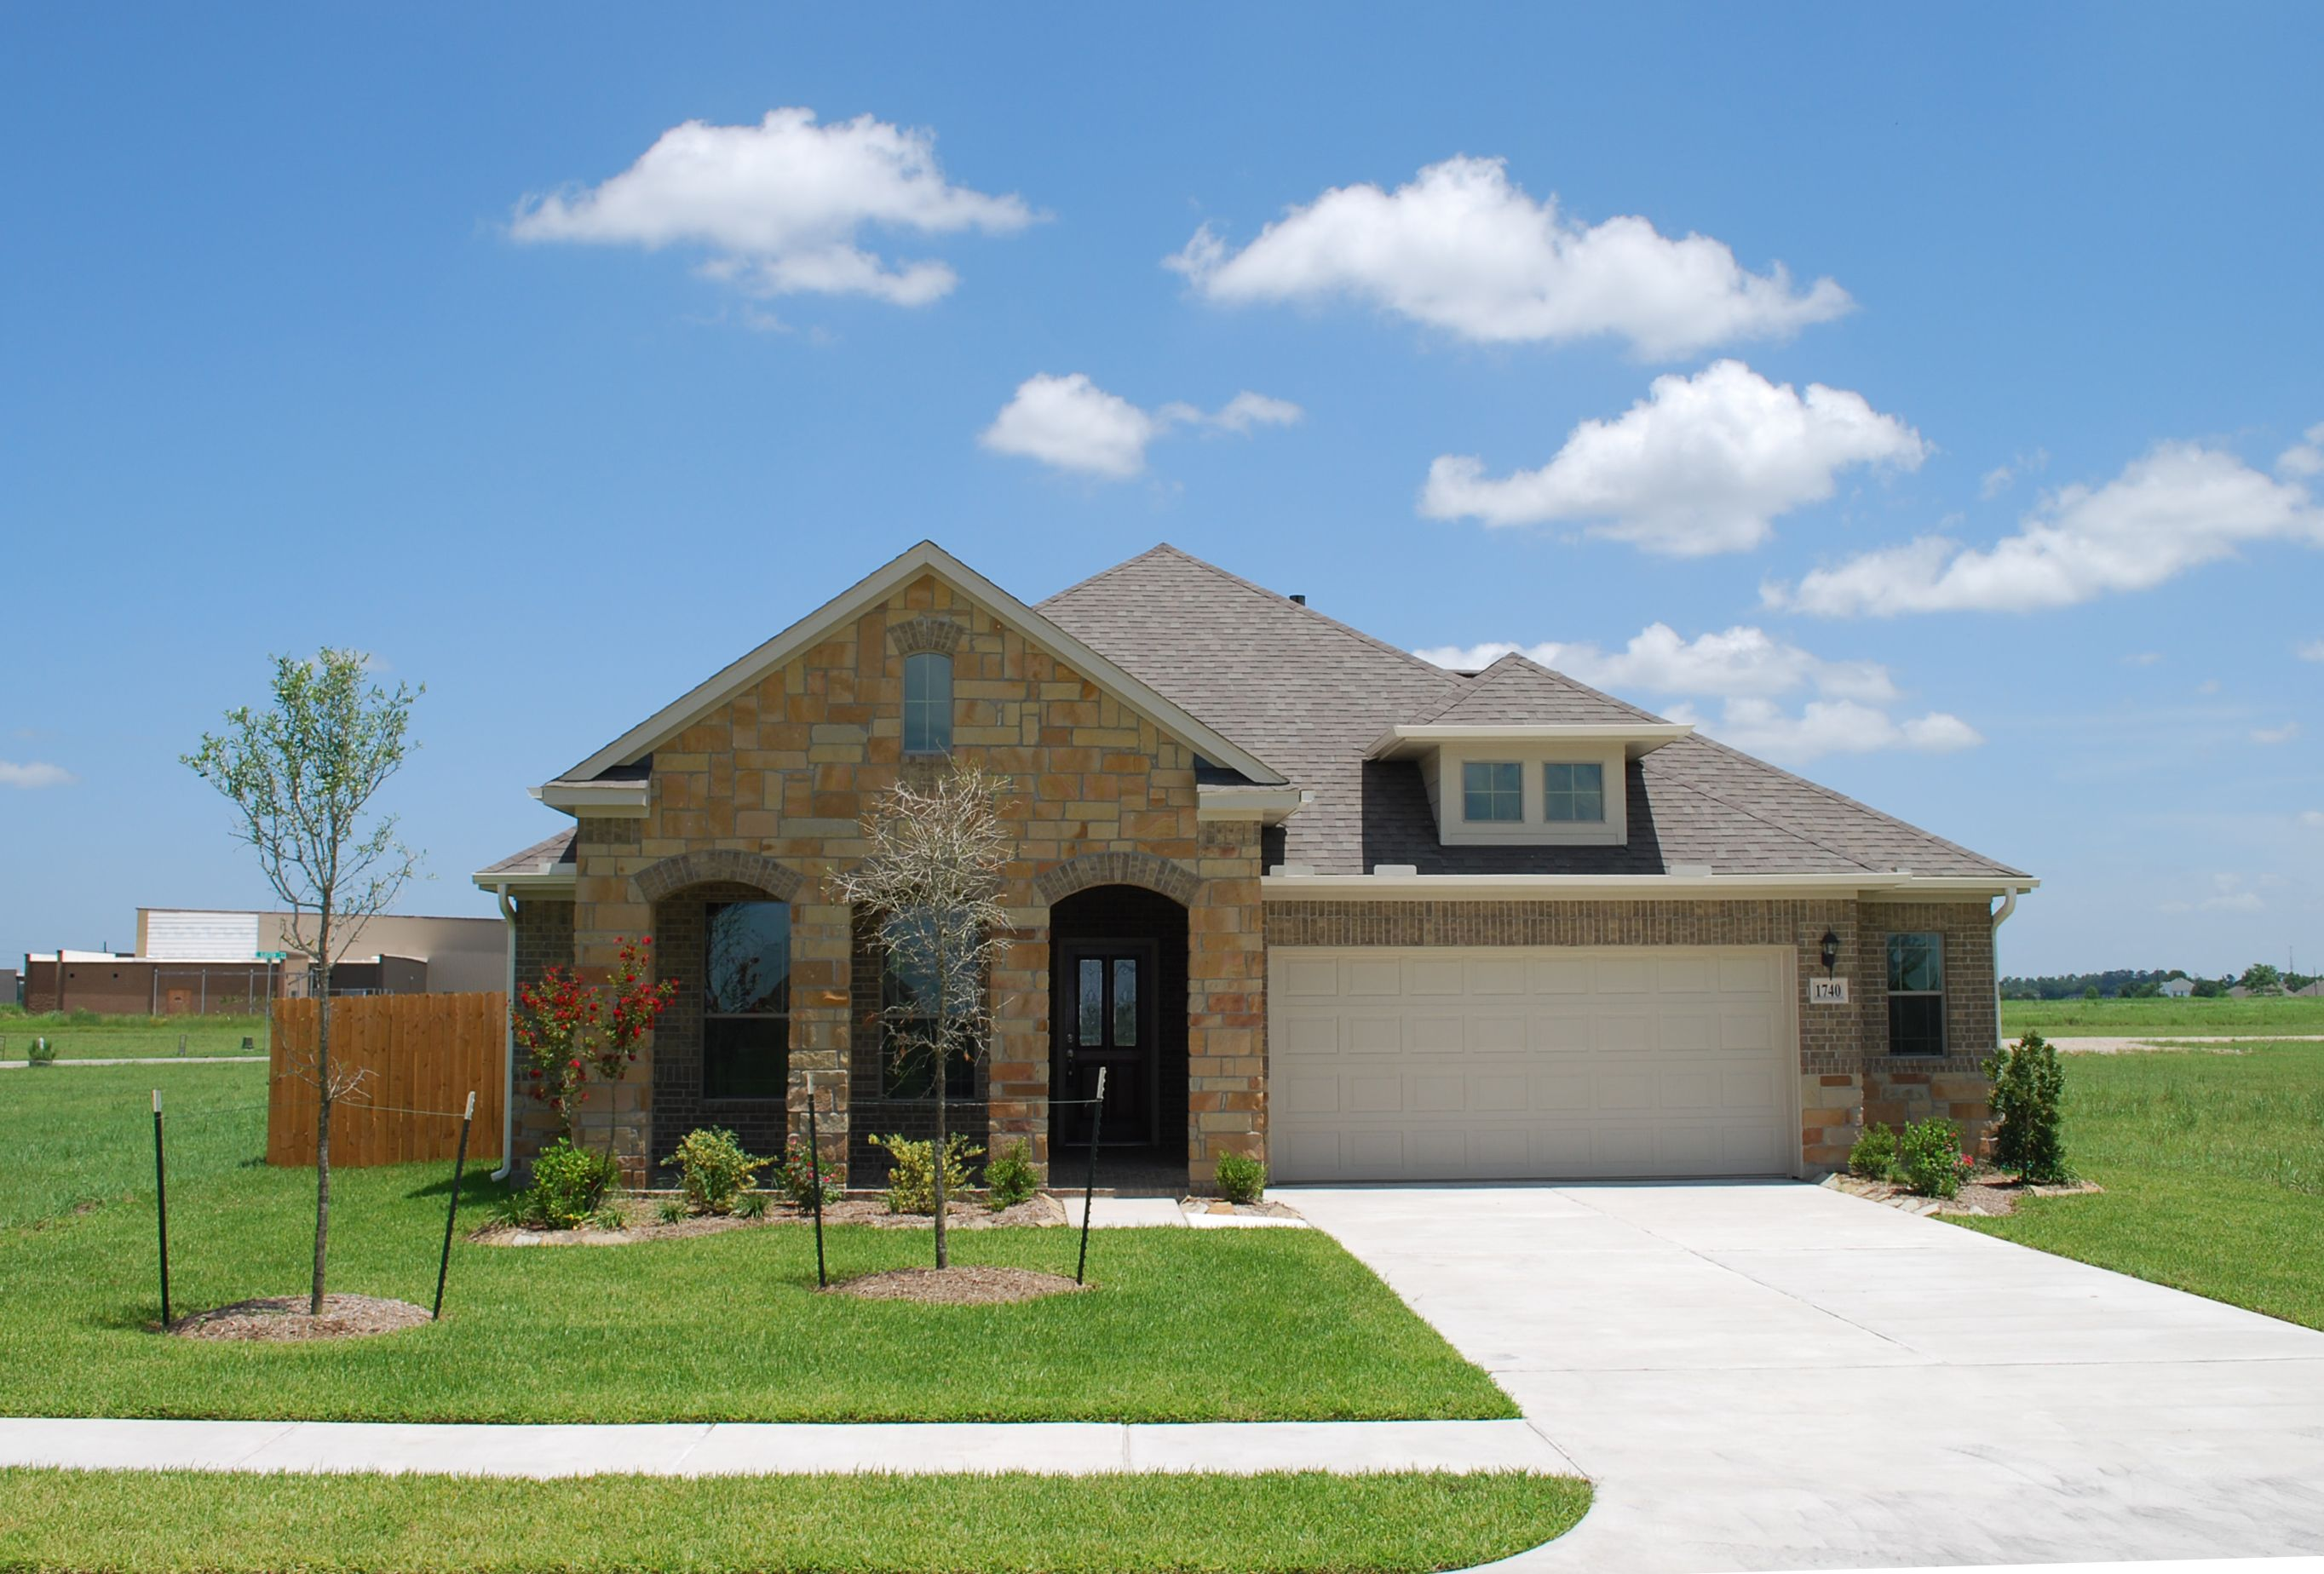 Celeste Exterior With A Light Stone Finish And Arches